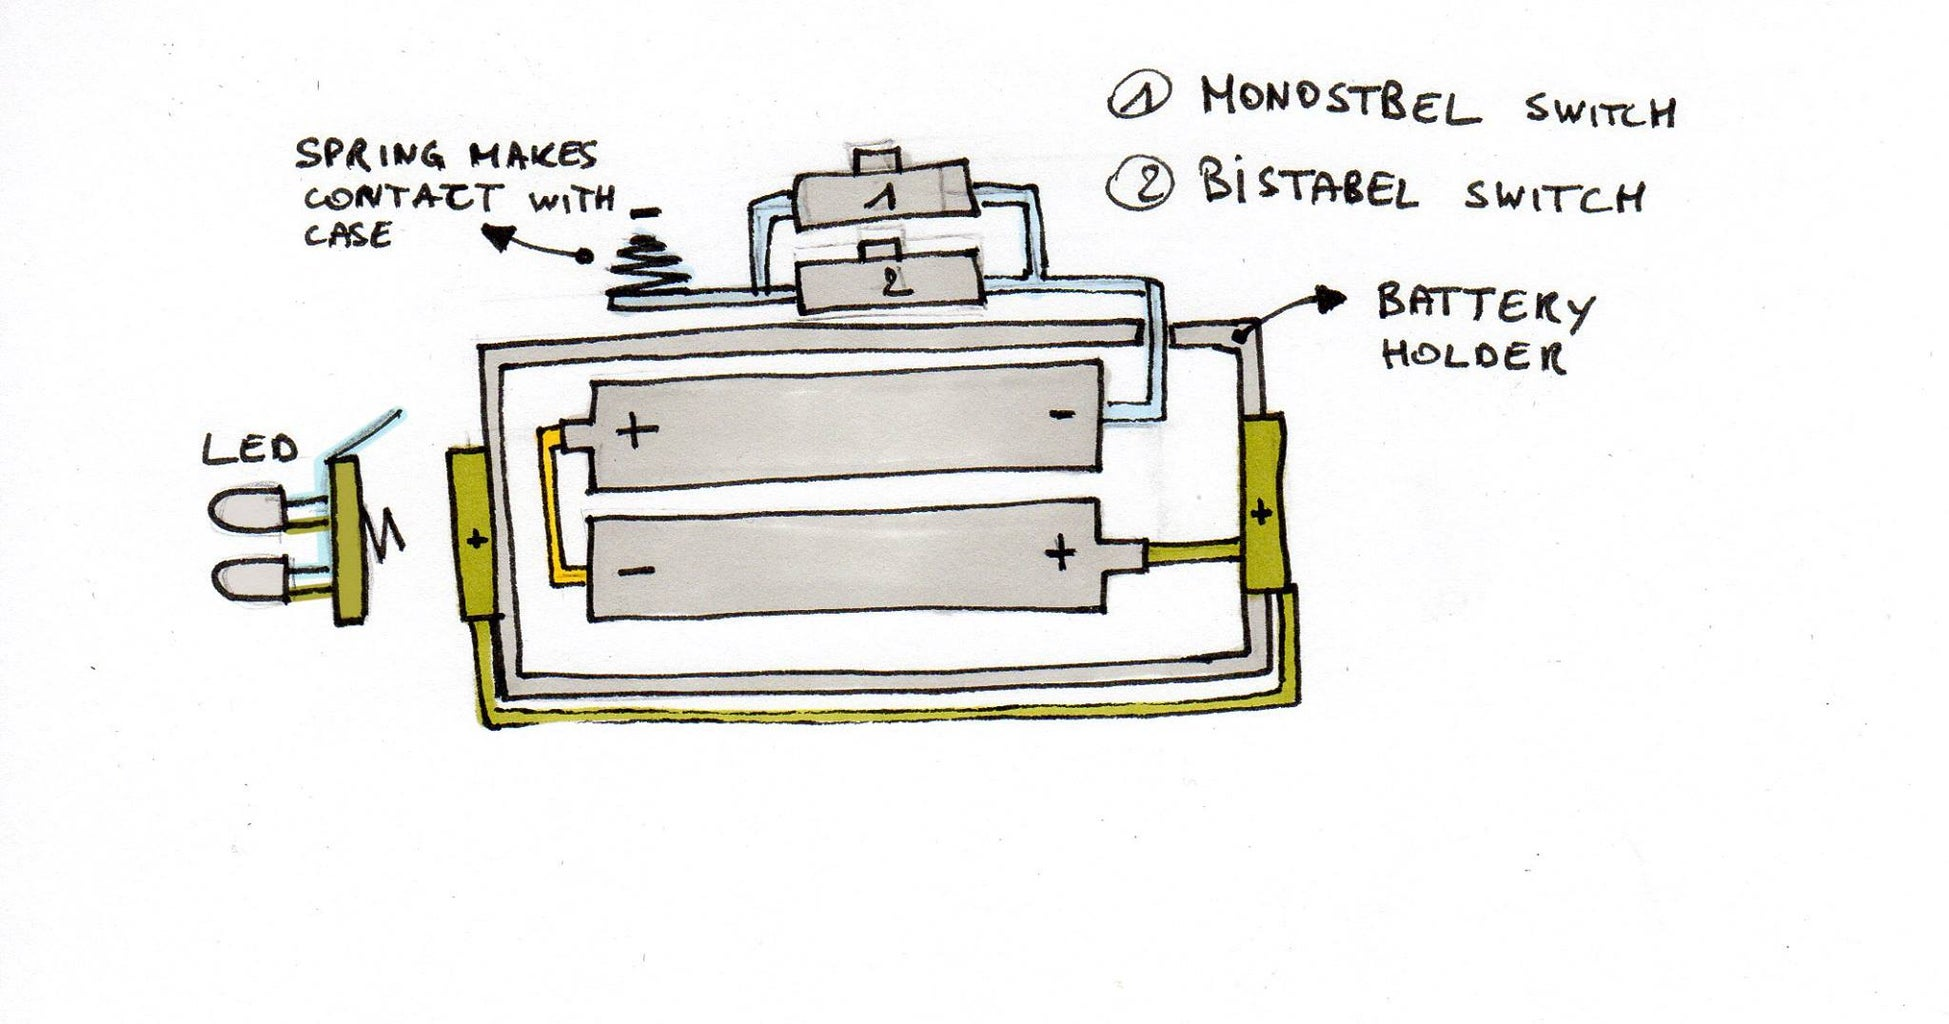 Battery Holder & Switches